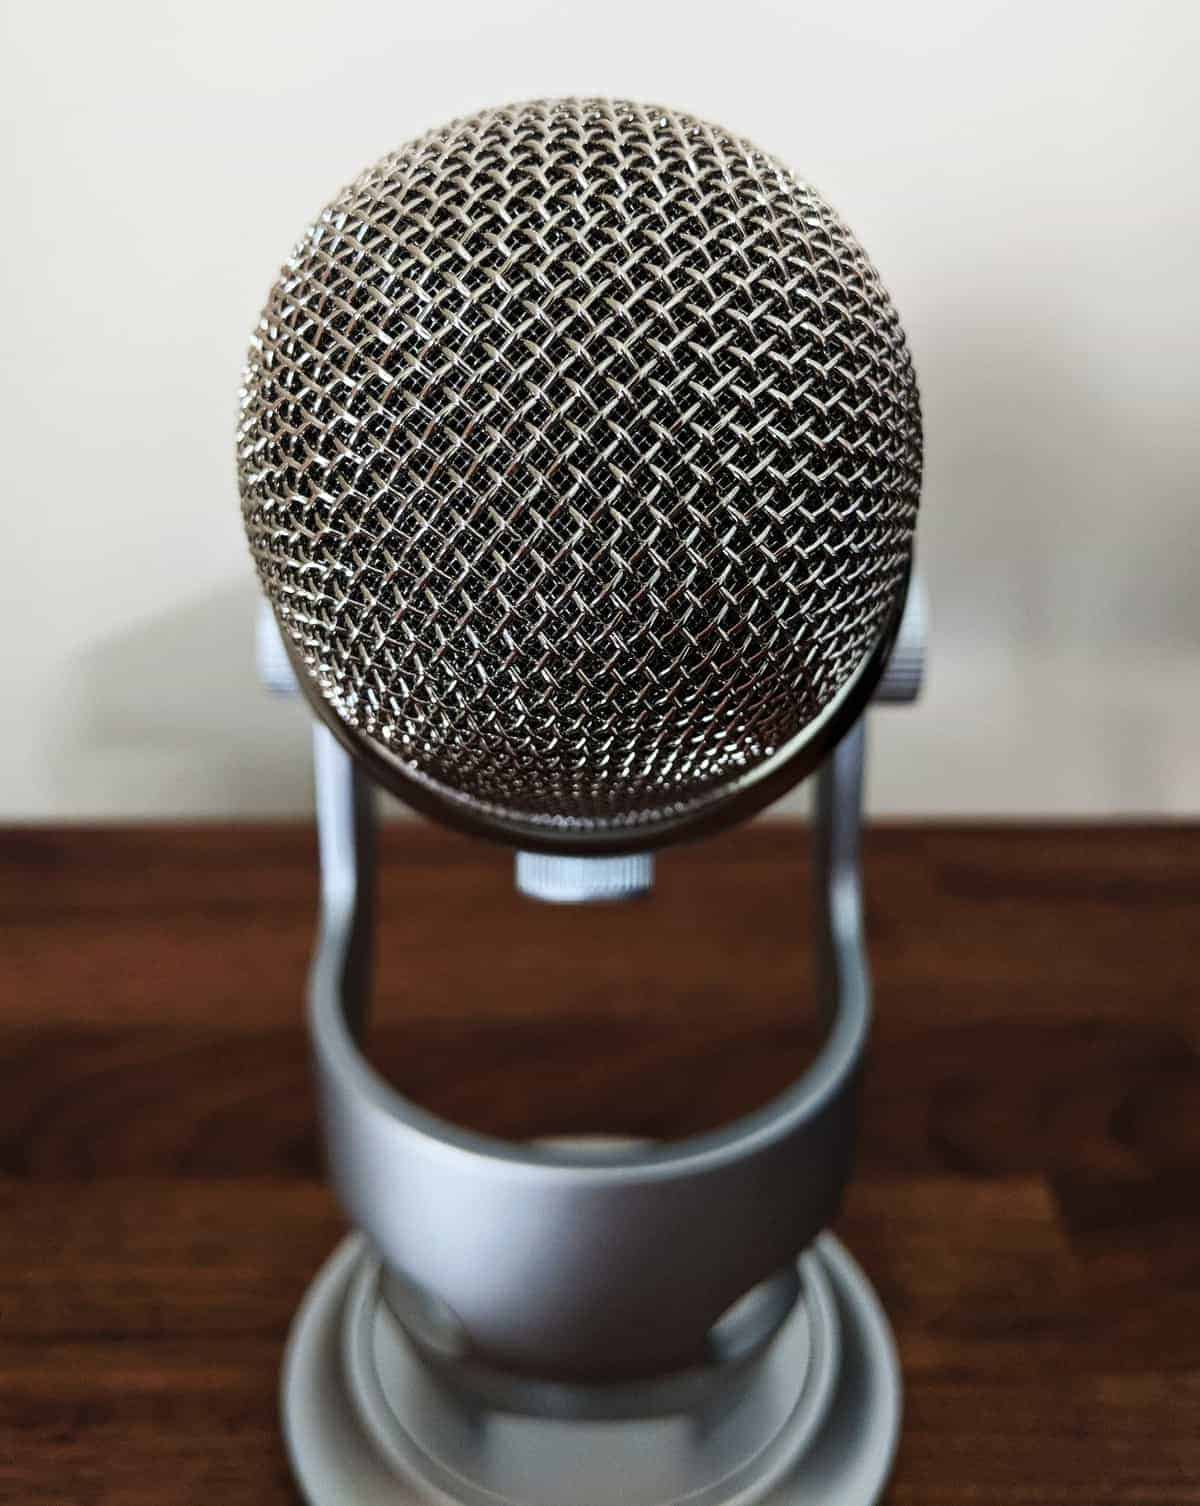 Blue-Yeti-Photos-13 Blue Yeti Microphone Review